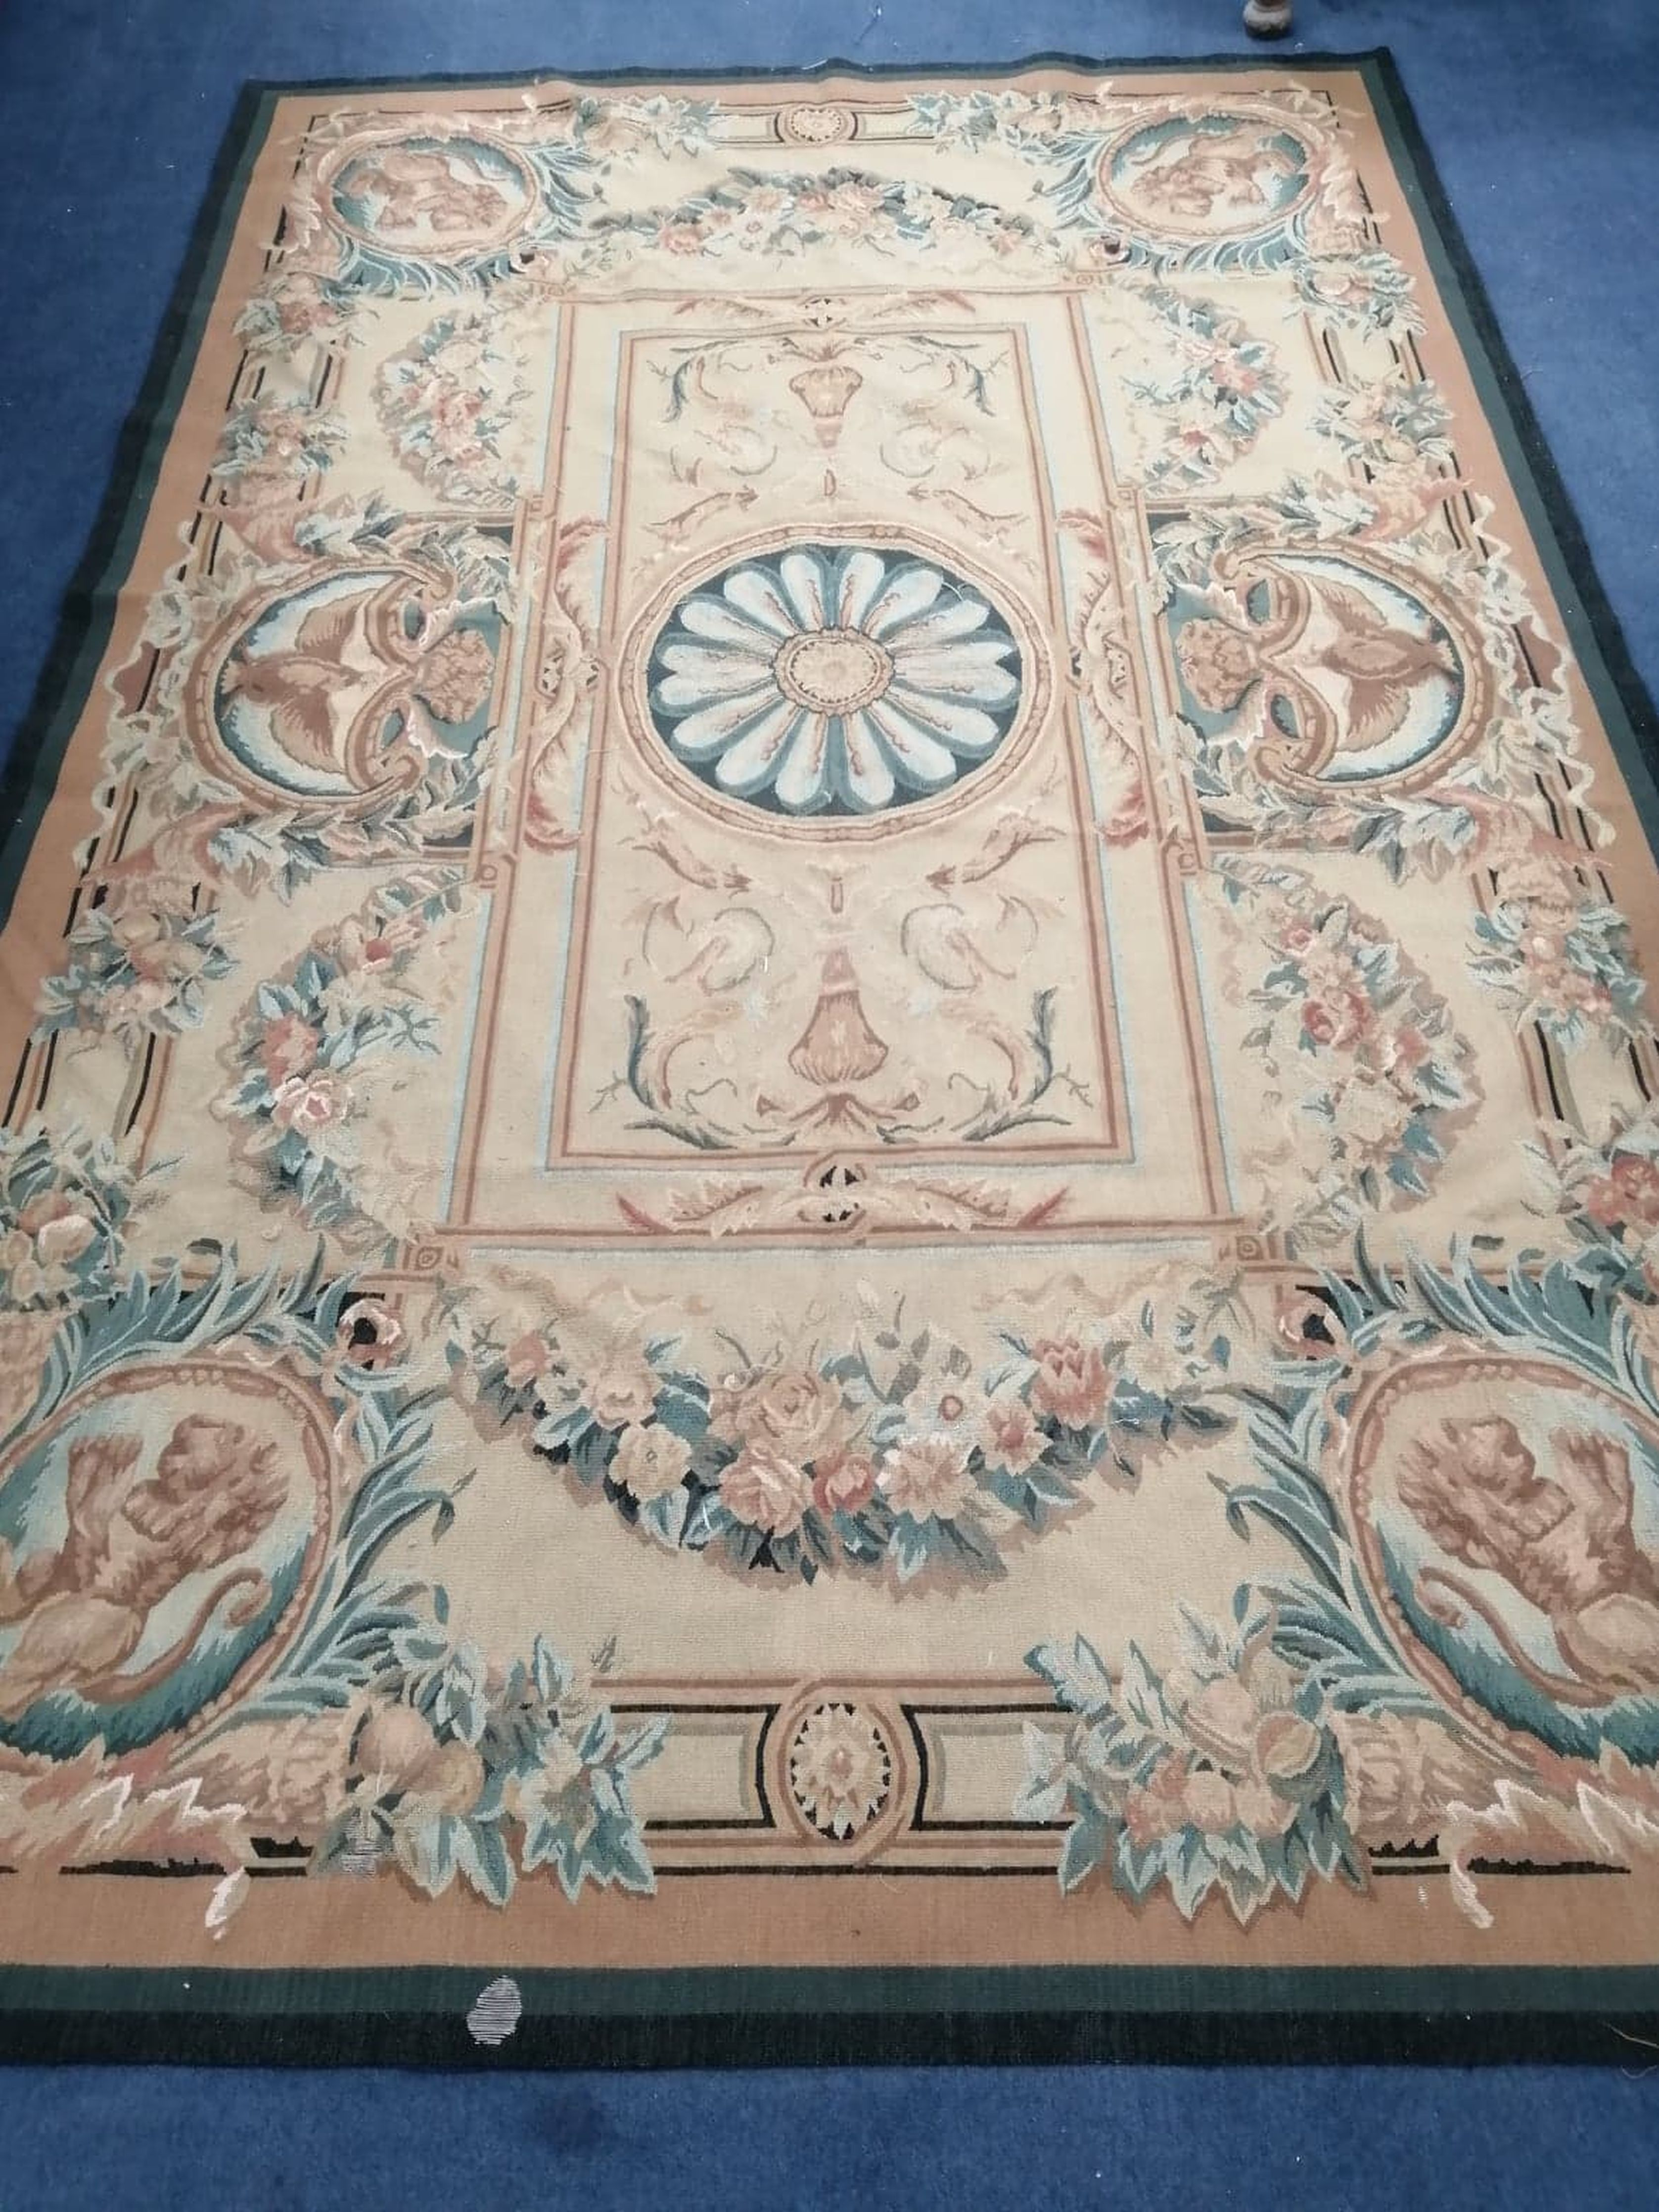 Lot 907 - An Aubusson style tapestry hanging 272 x 177cm